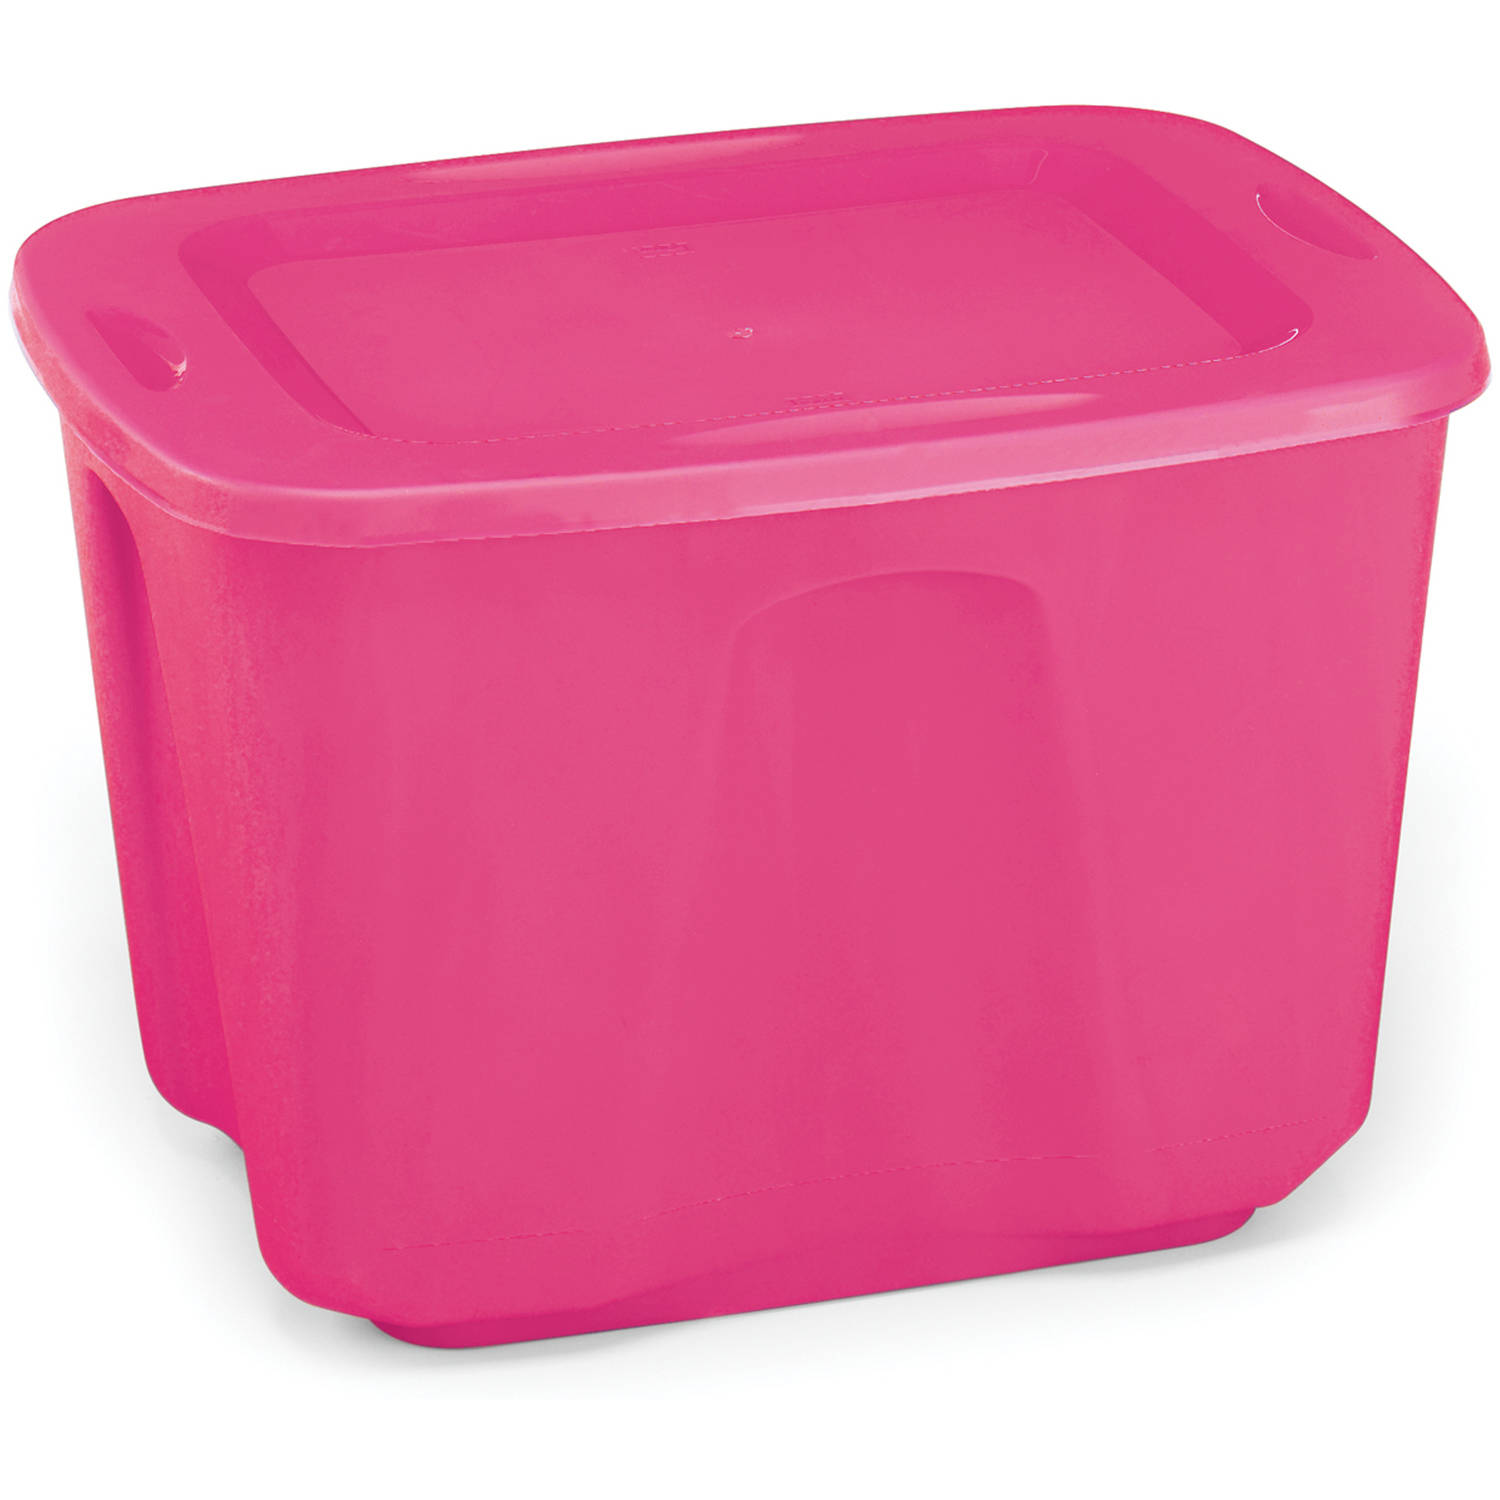 Homz Storage Tote 18-Gallon, Set of 8 - Multiple Colors